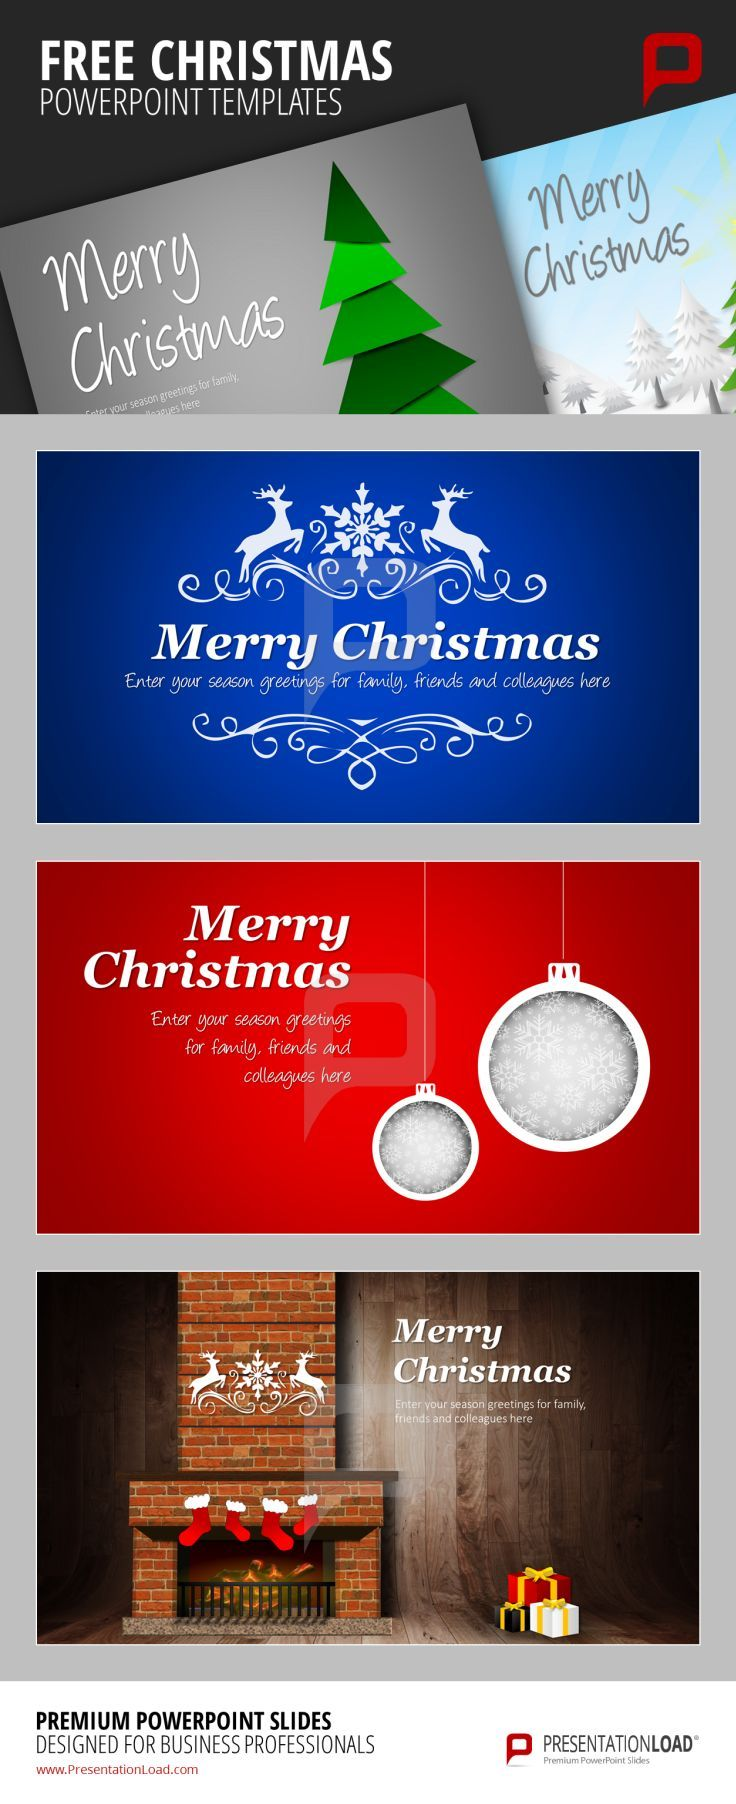 38 best FREE CHRISTMAS // POWERPOINT TEMPLATES images on Pinterest ...